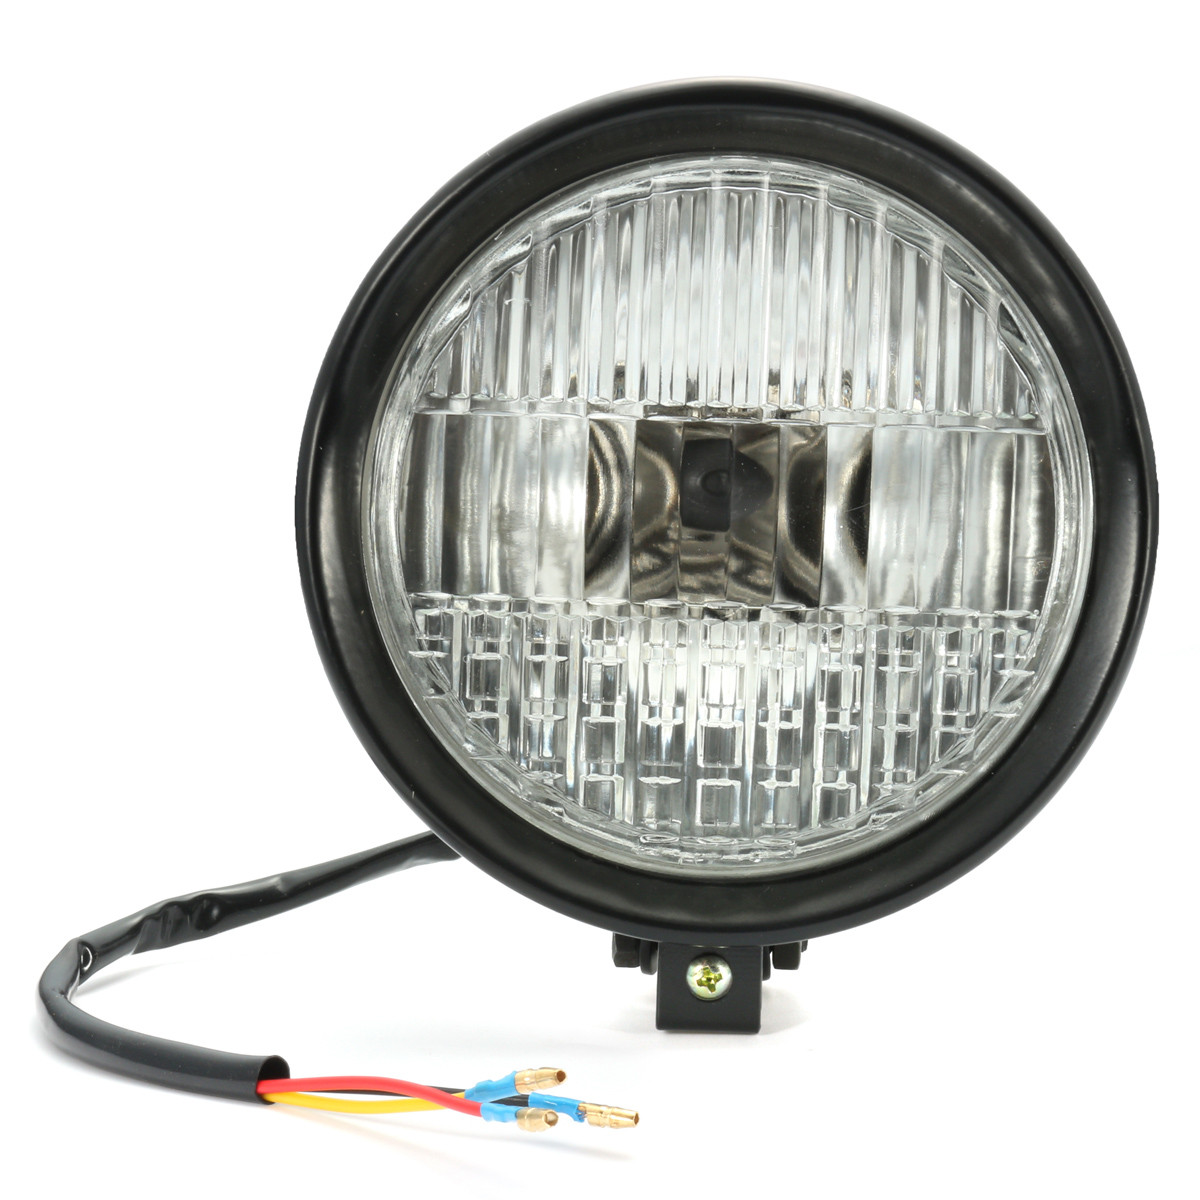 Motorcycle Black 5 INCH Headlight Head Lamp For Harley Bobber Chopper Touring